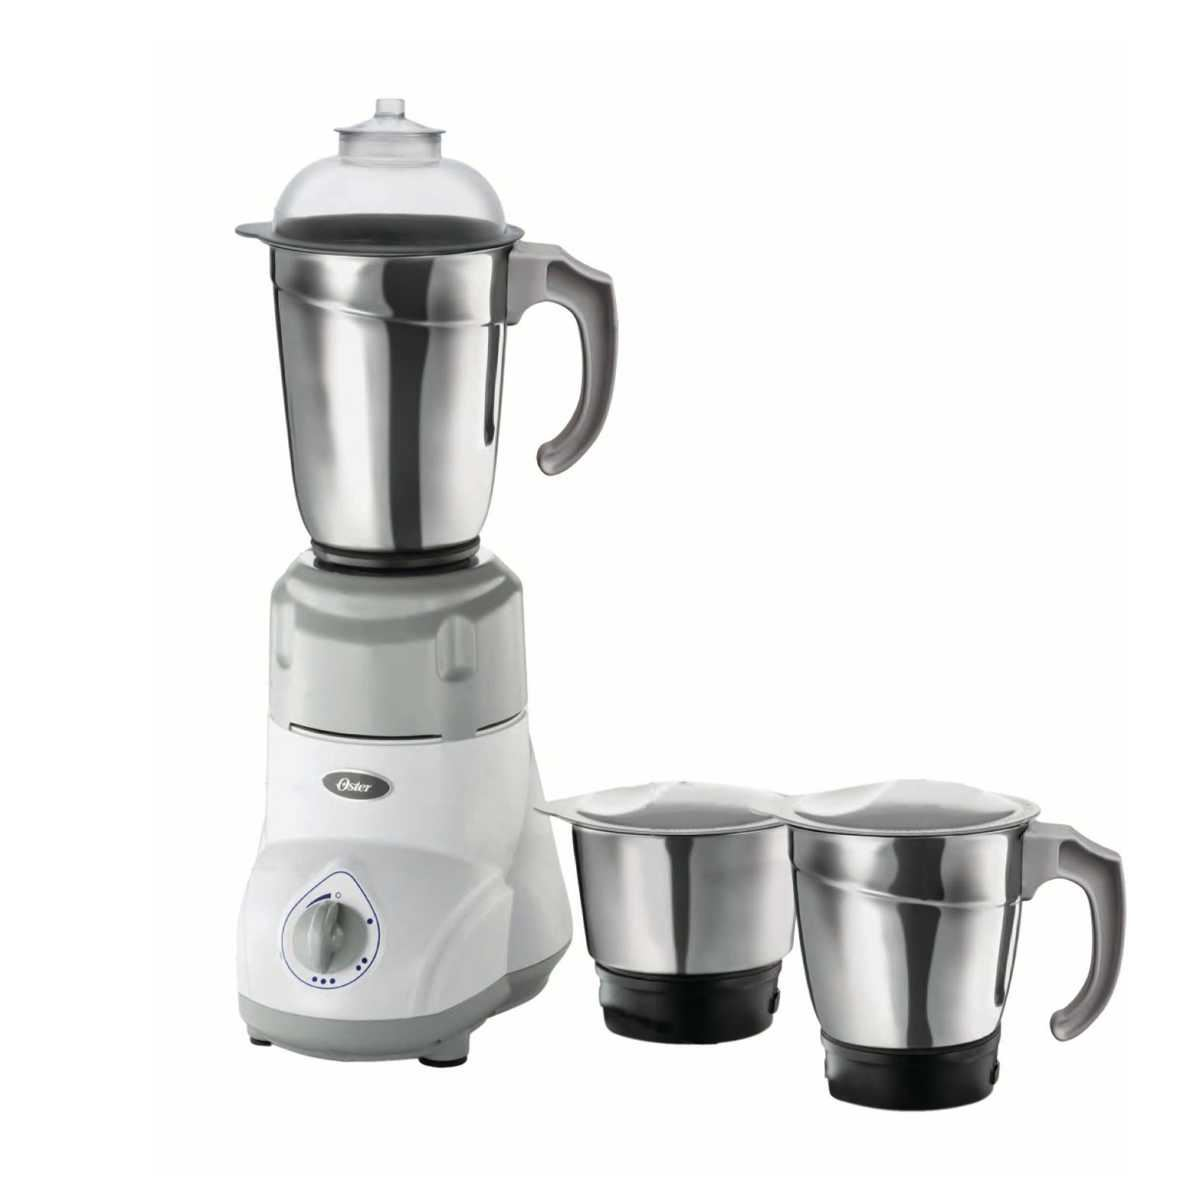 Picture of Oster Mixer Grinder MGSTSL 5020- 449